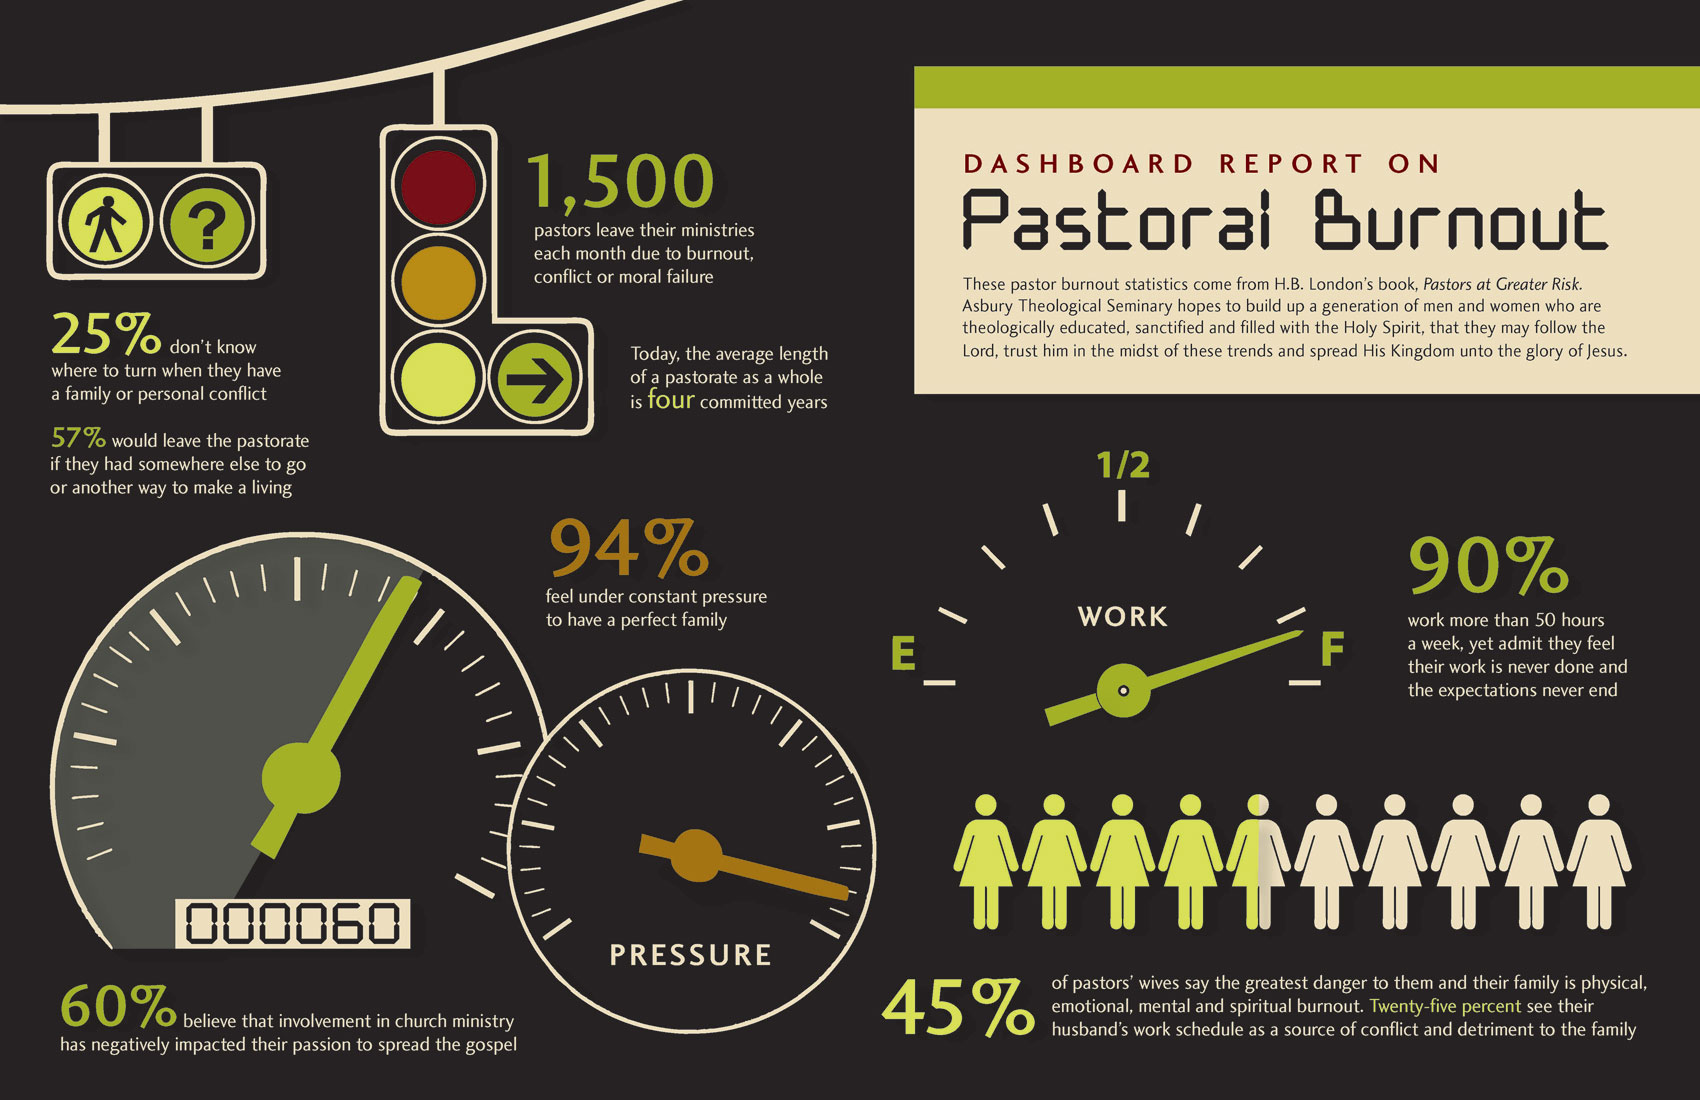 pastoral burnout infographic